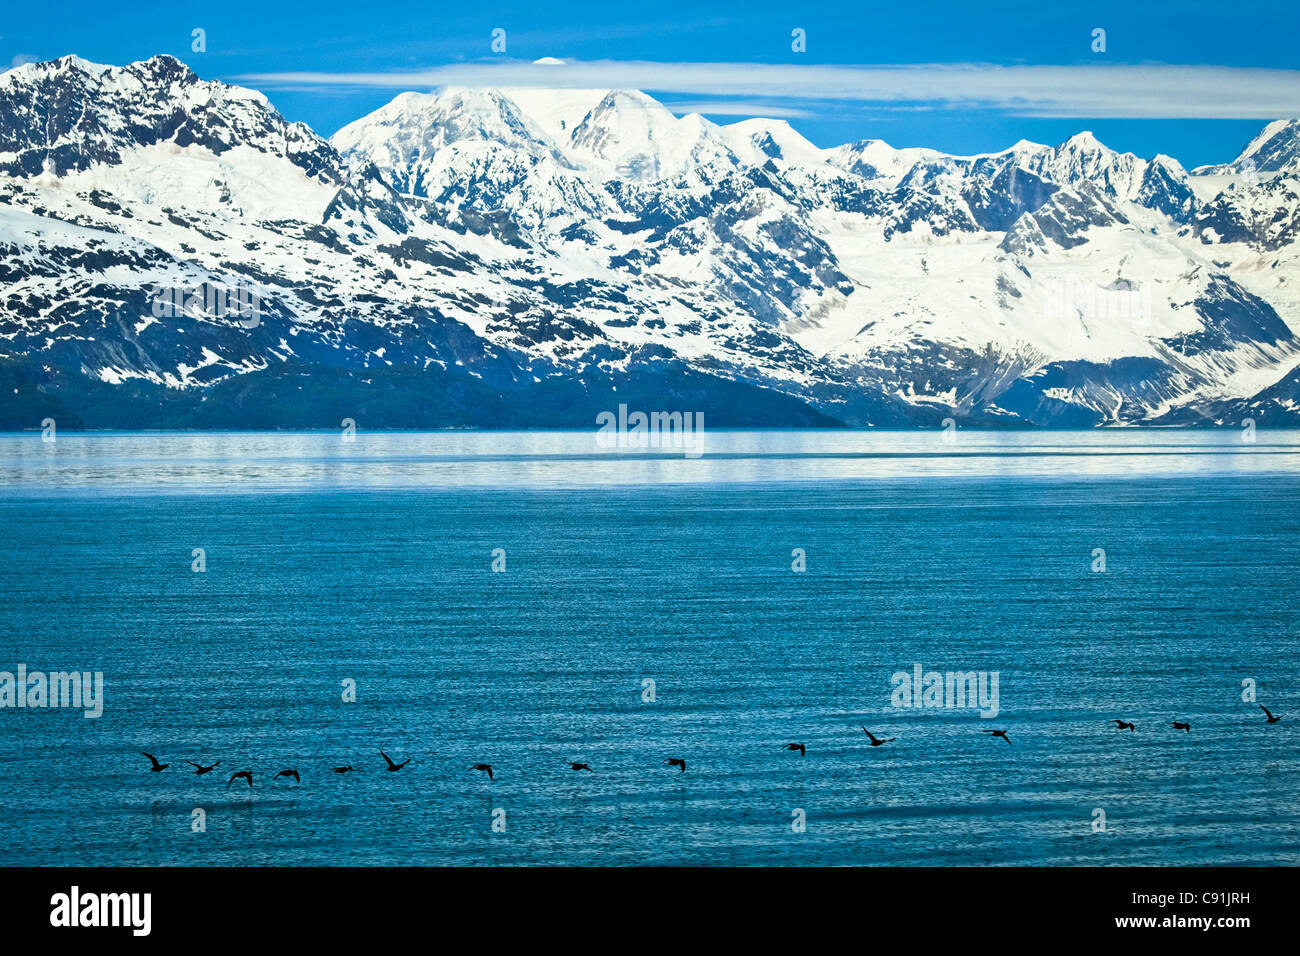 Scenic view of the Fairweather Range and Tarr Inlet with Black Scoters in the foreground, Glacier Bay National Park - Stock Image